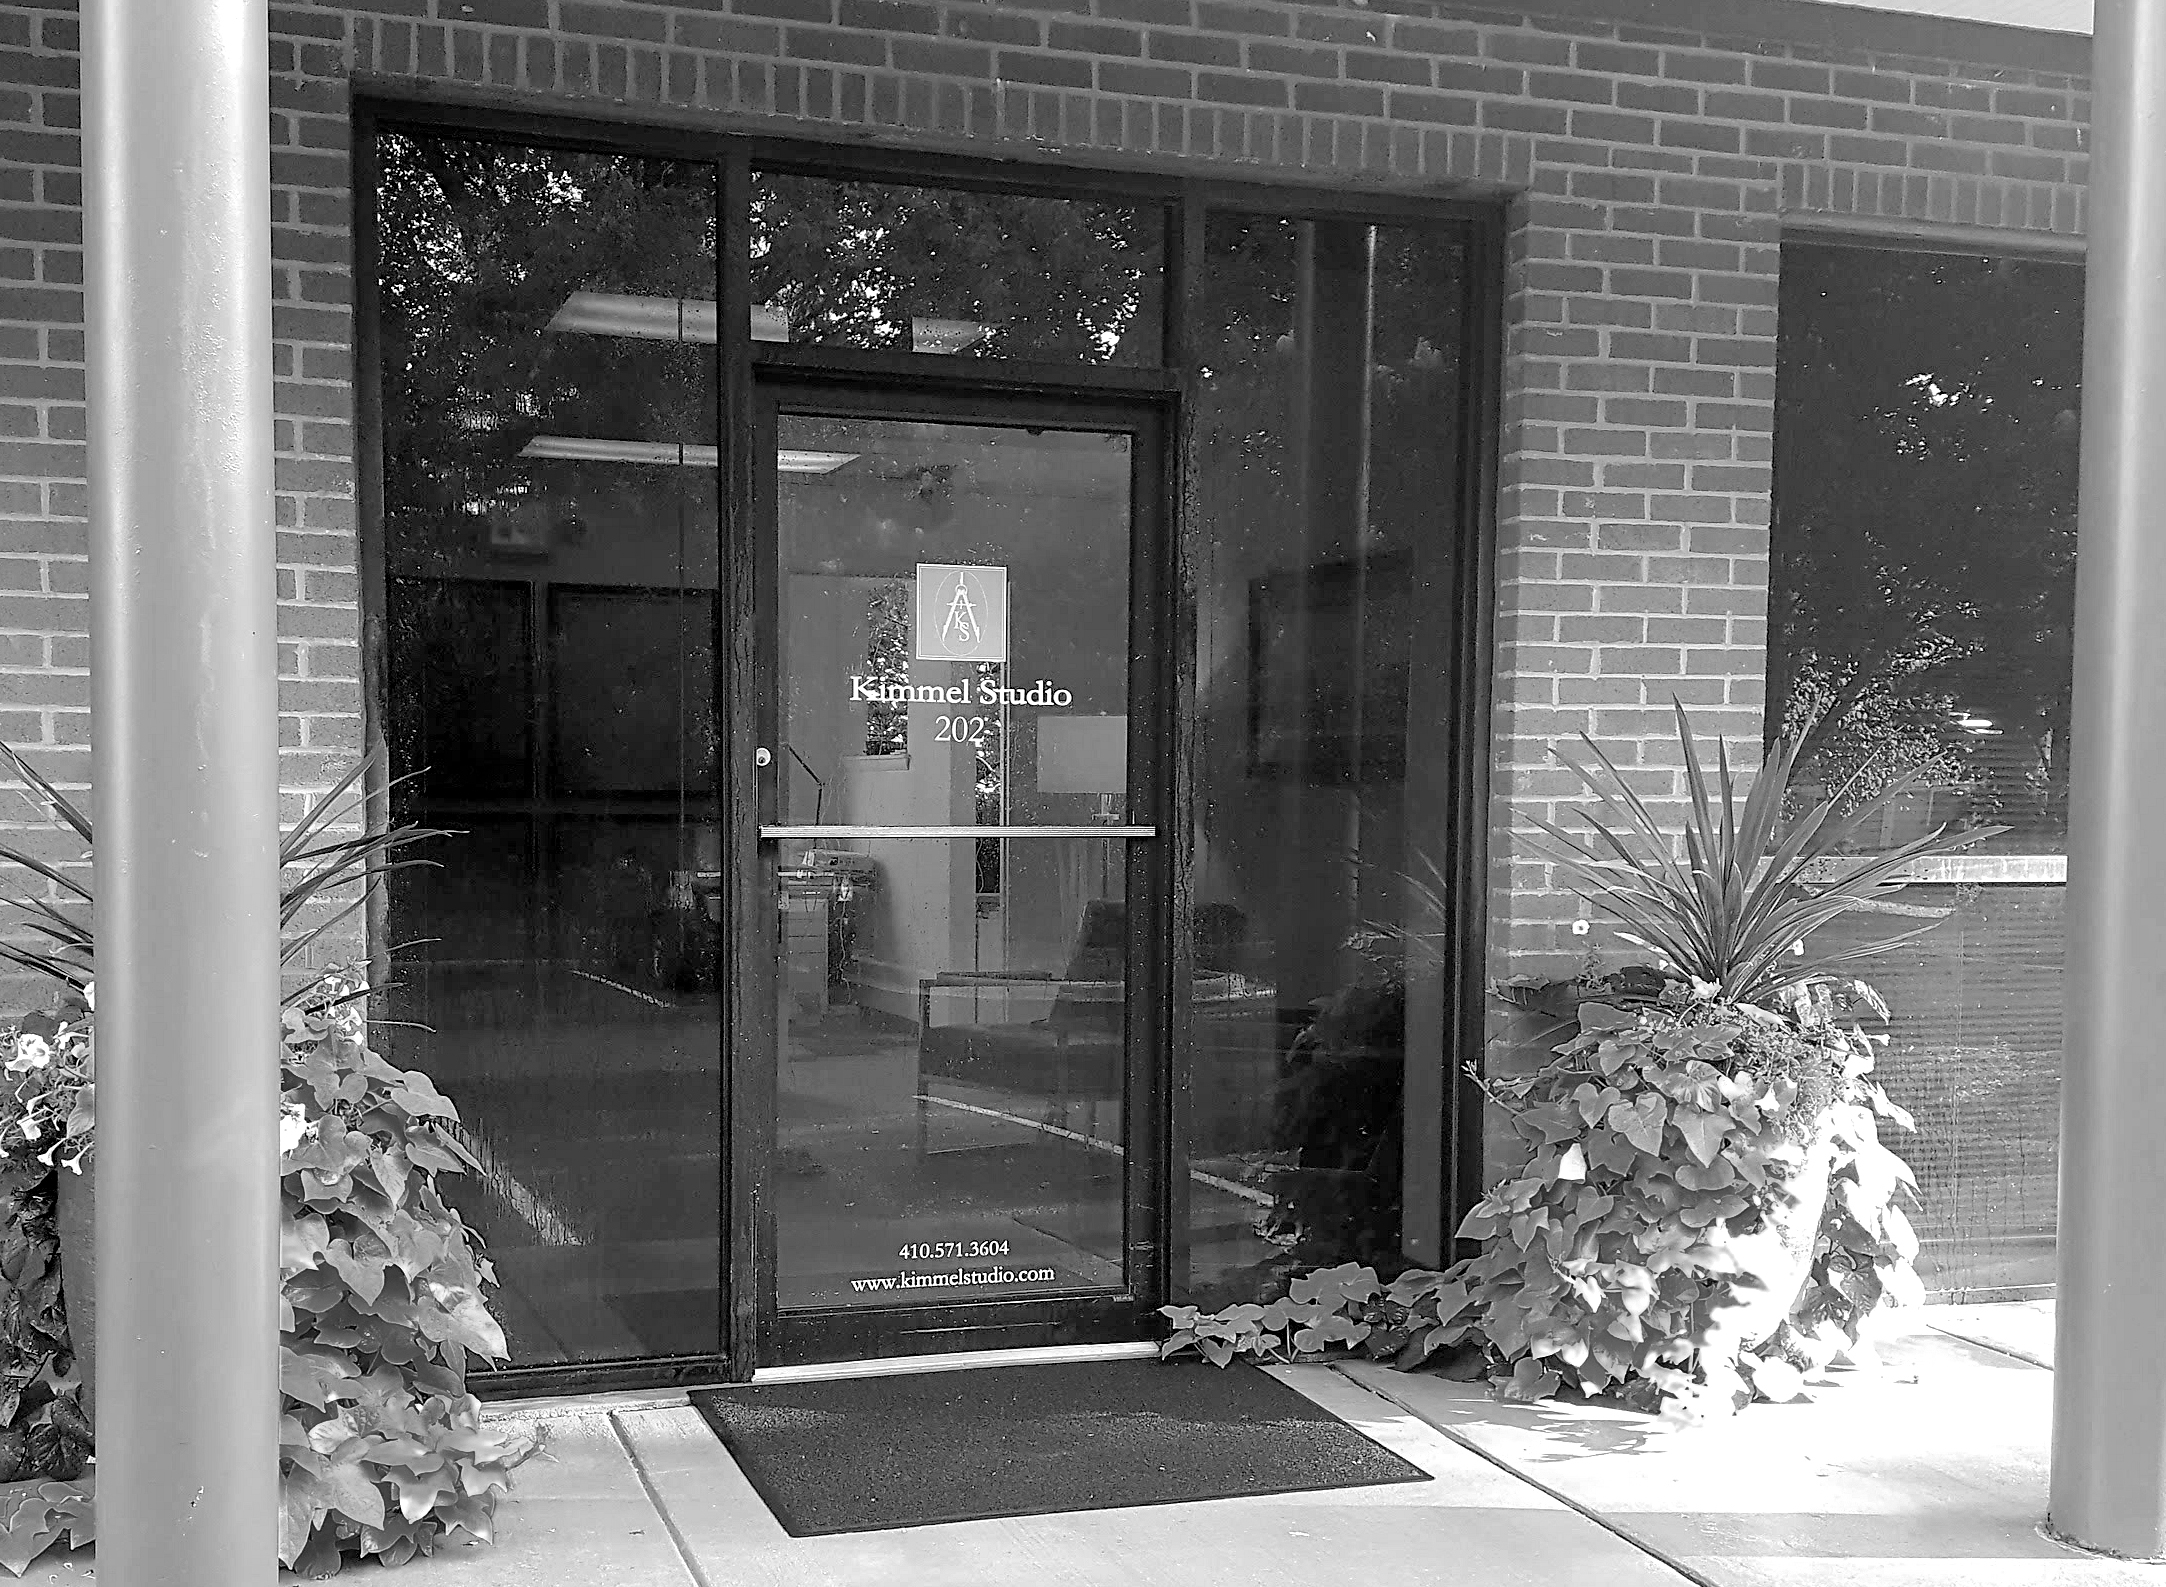 You can find our office in Eastport, a neighborhood of Annapolis, MD. We are walking distance from downtown historic Annapolis, but unlike many of the offices located in downtown Annapolis, ours has its parking lot. It is easy to park, and our clients frequently drop by to say hi.